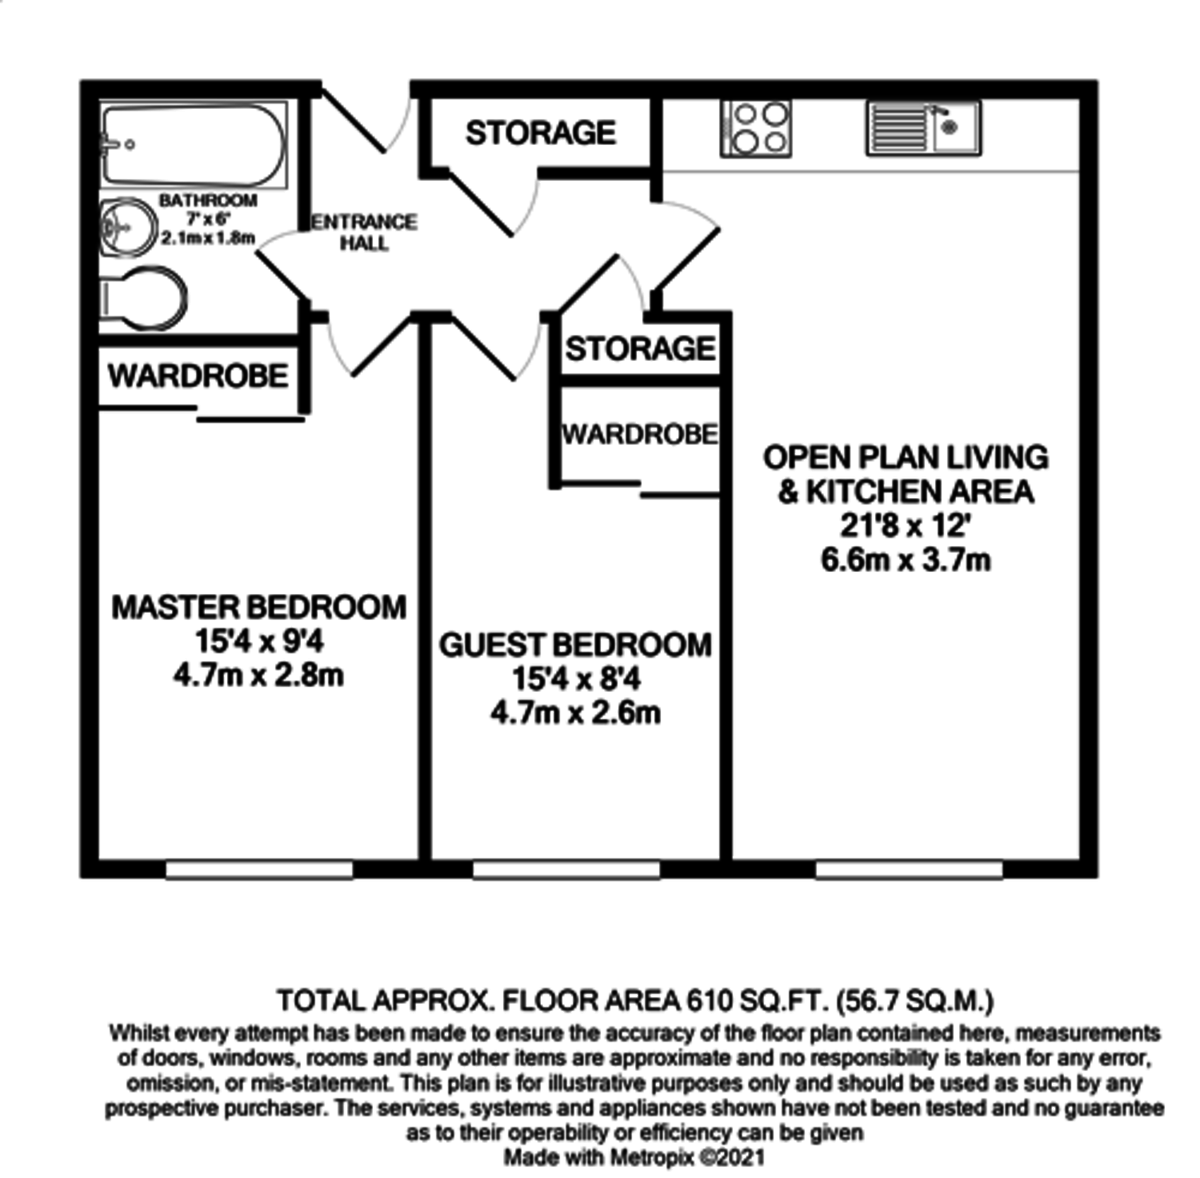 Dayus House, 2 Tenby Street South, Jewellery Quarter floorplan 1 of 1